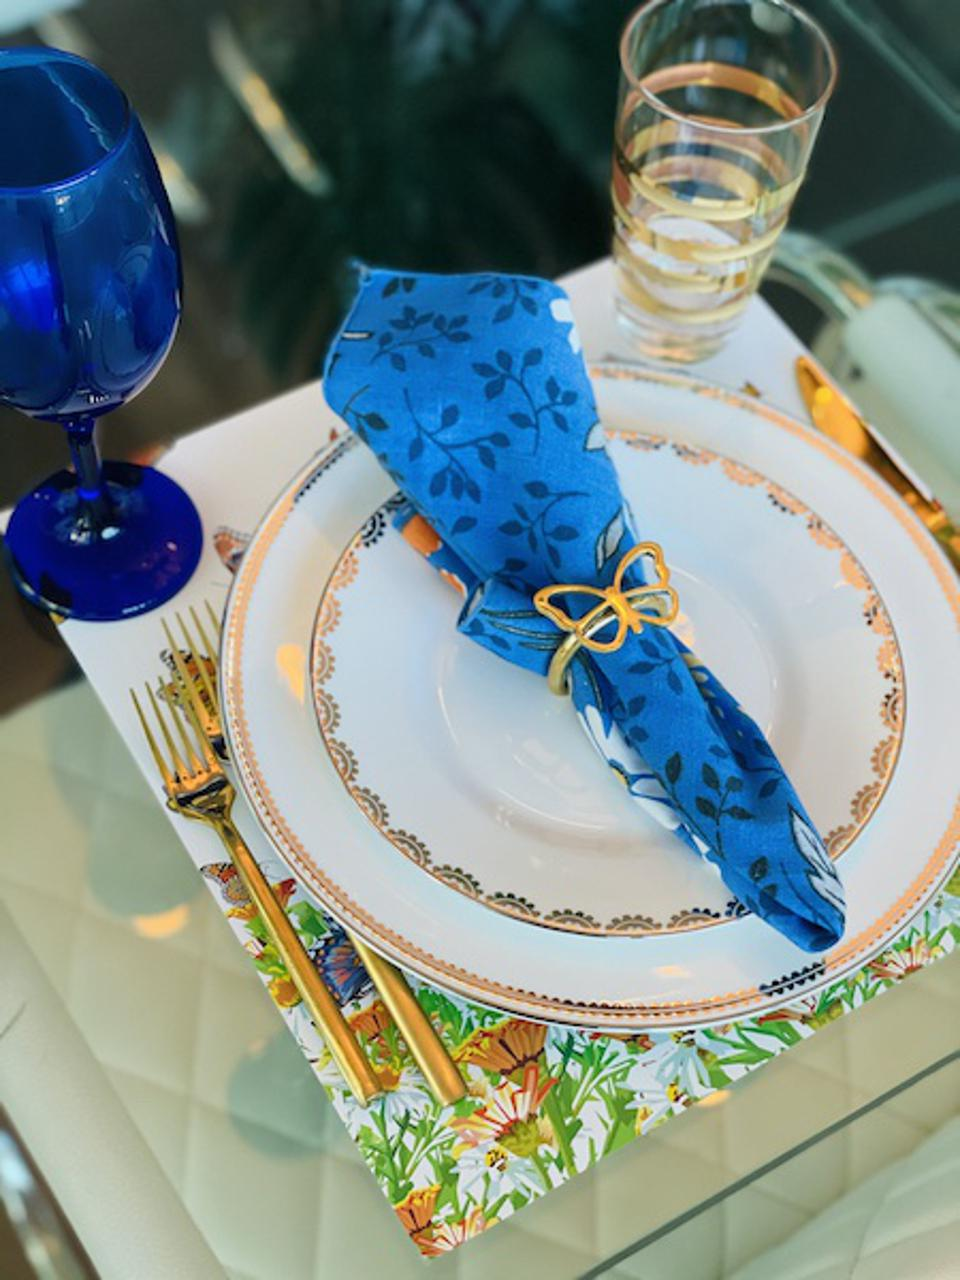 A placesetting with gold utensils and a butterfly napkin ring